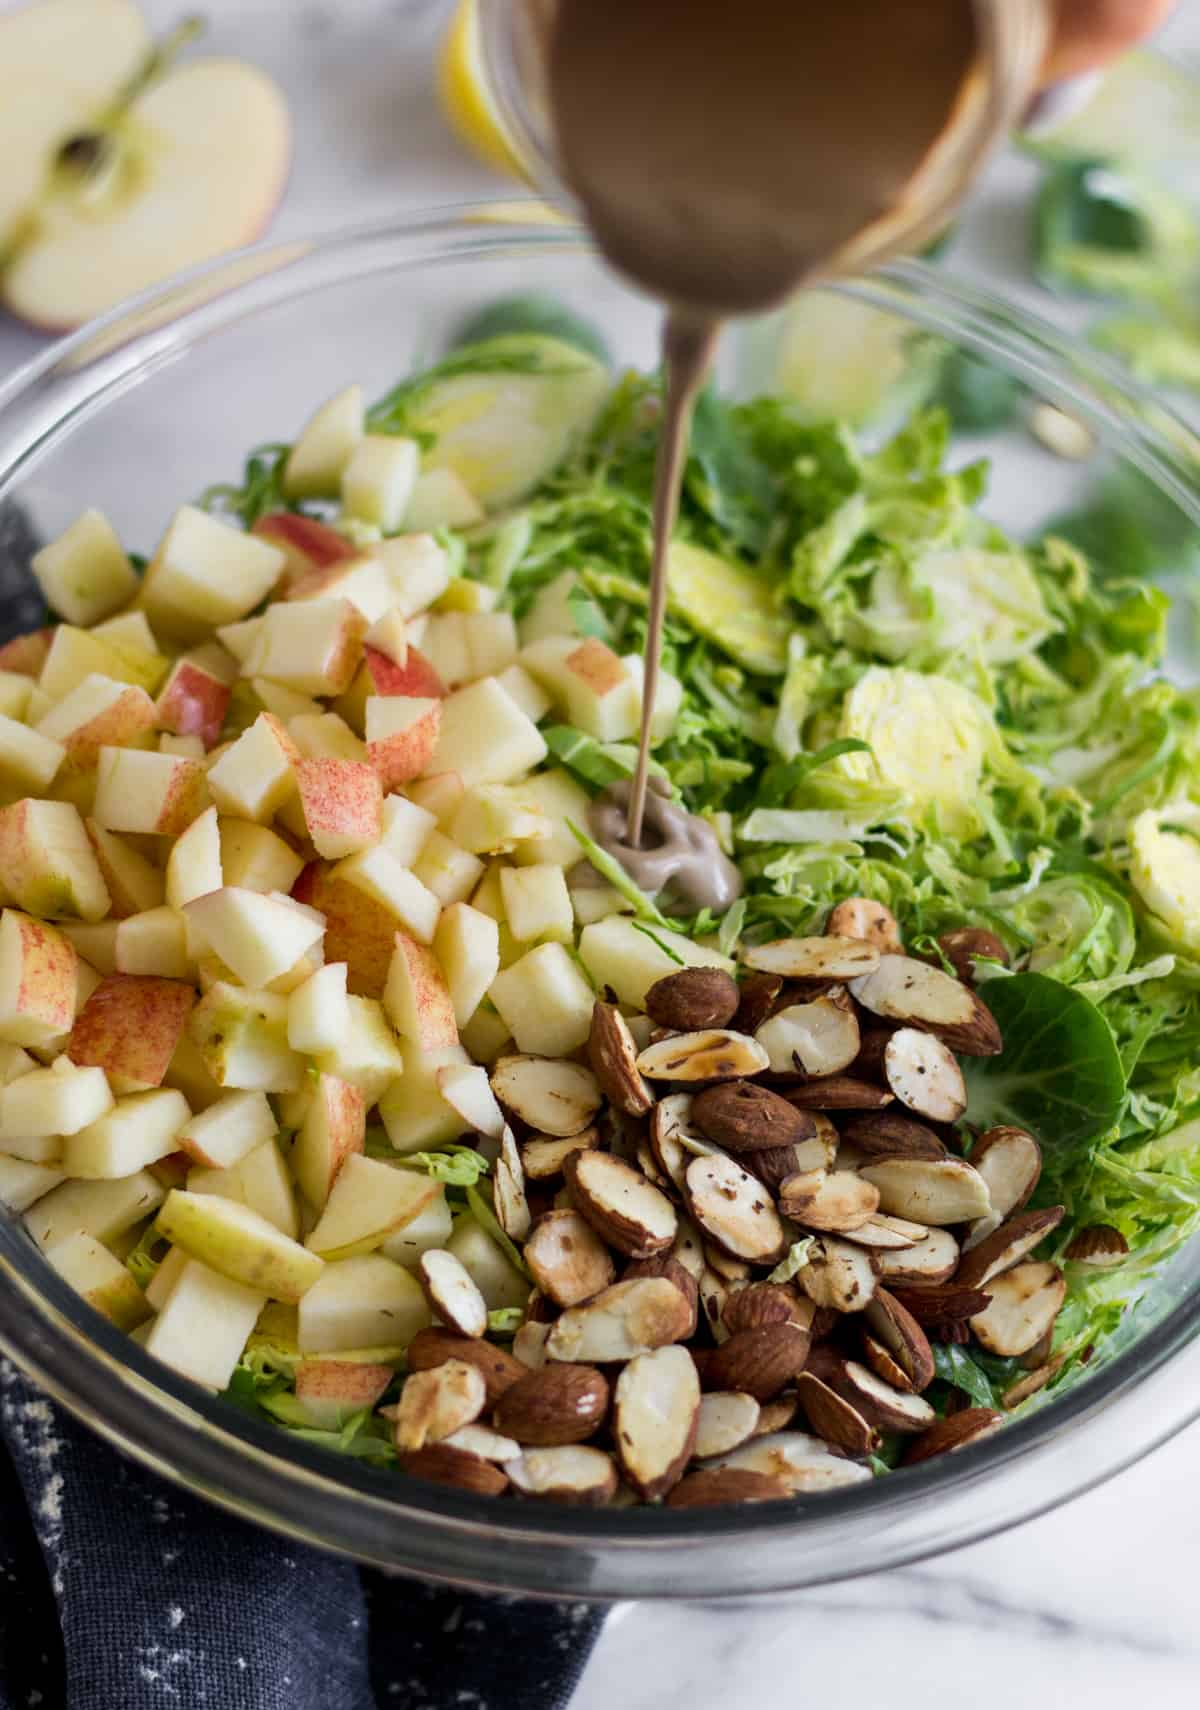 Glass bowl with shredded brussels sprouts, chopped apple, and toasted almonds and creamy balsamic dressing being poured into it